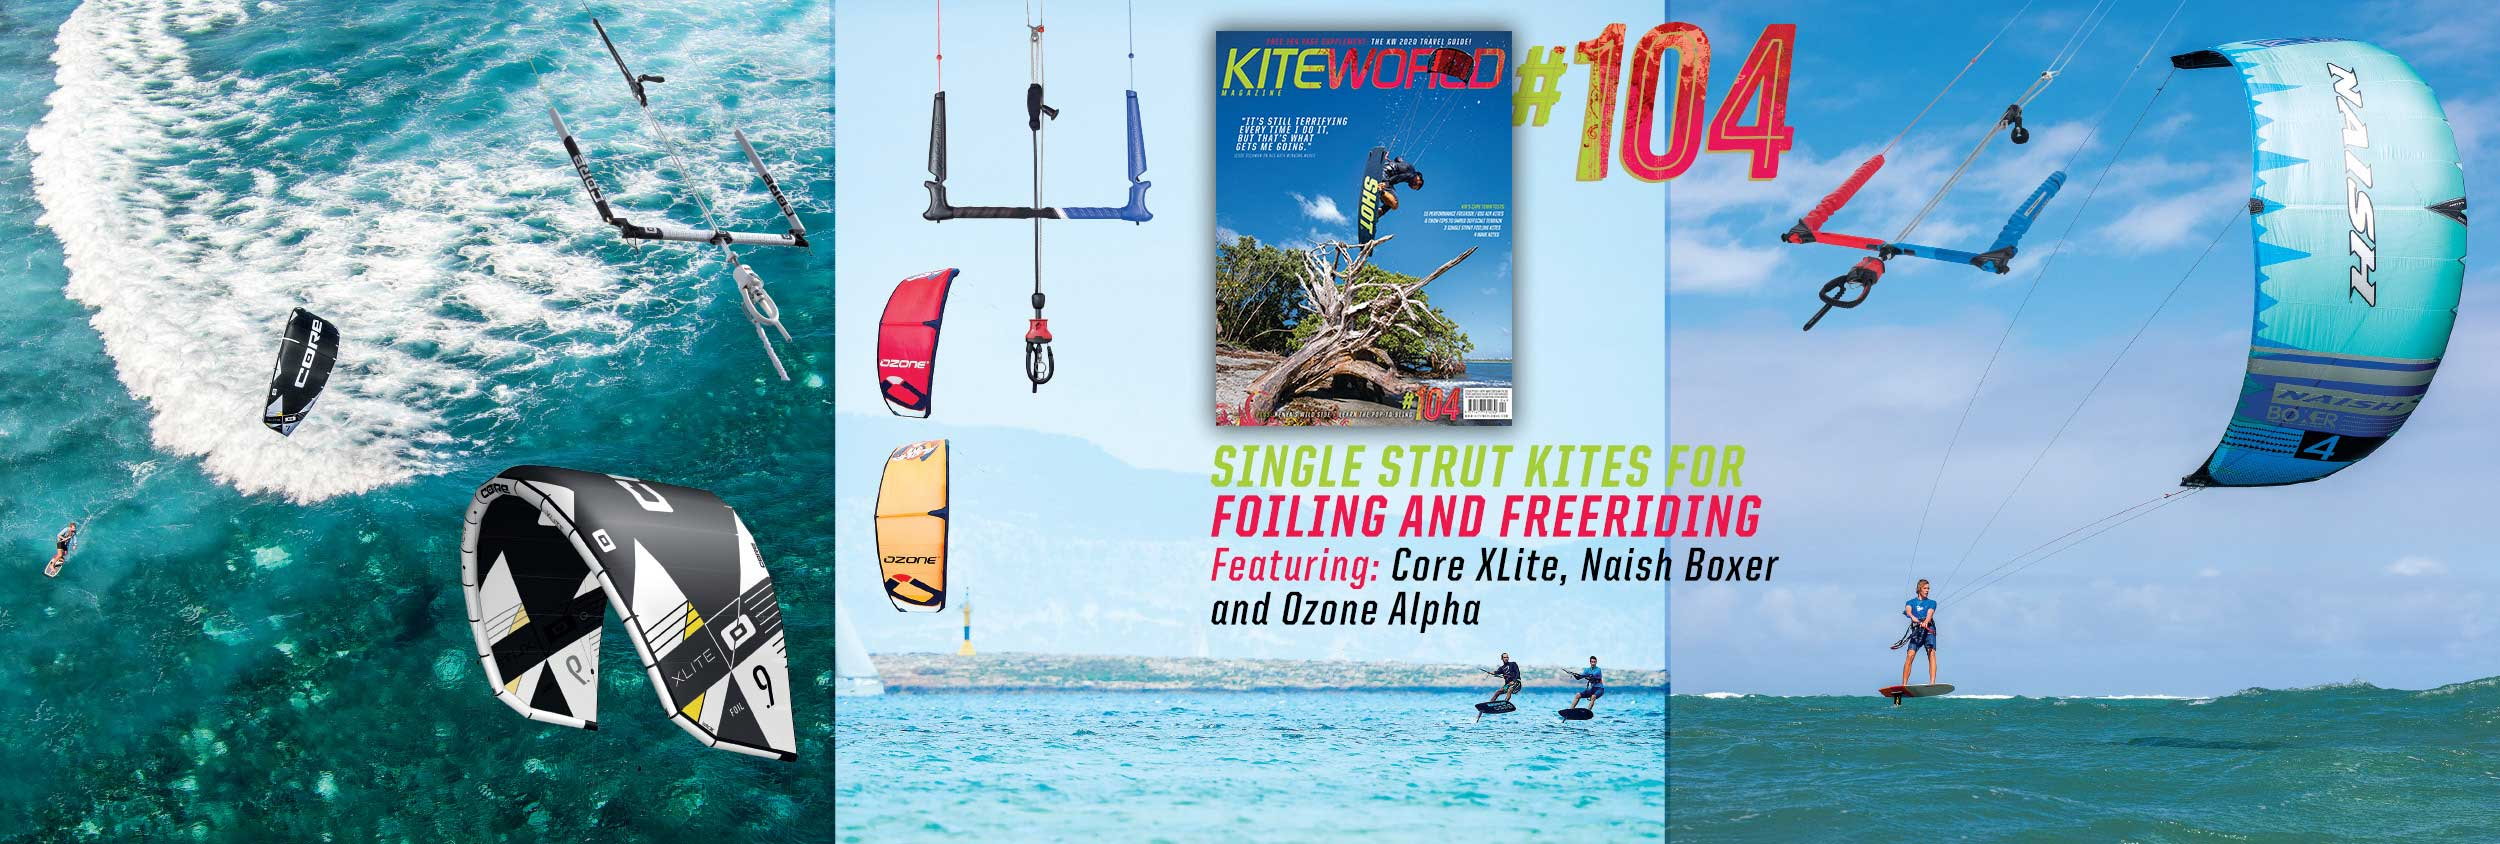 Single Strut kite tests 2020